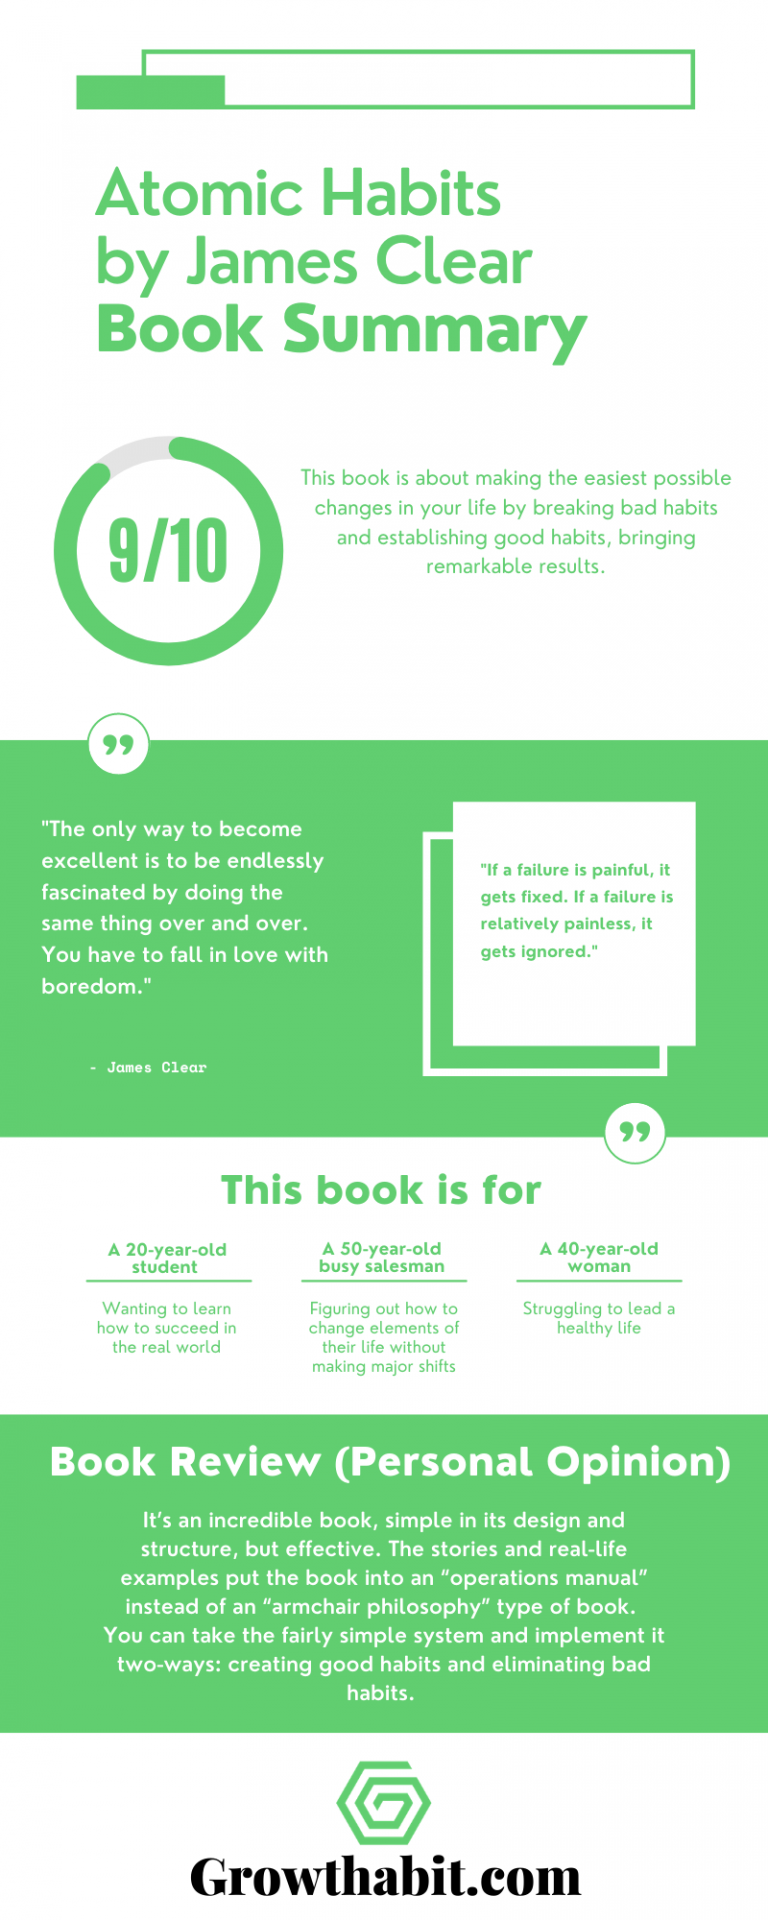 Atomic Habits by James Clear - Book Summary Infographic